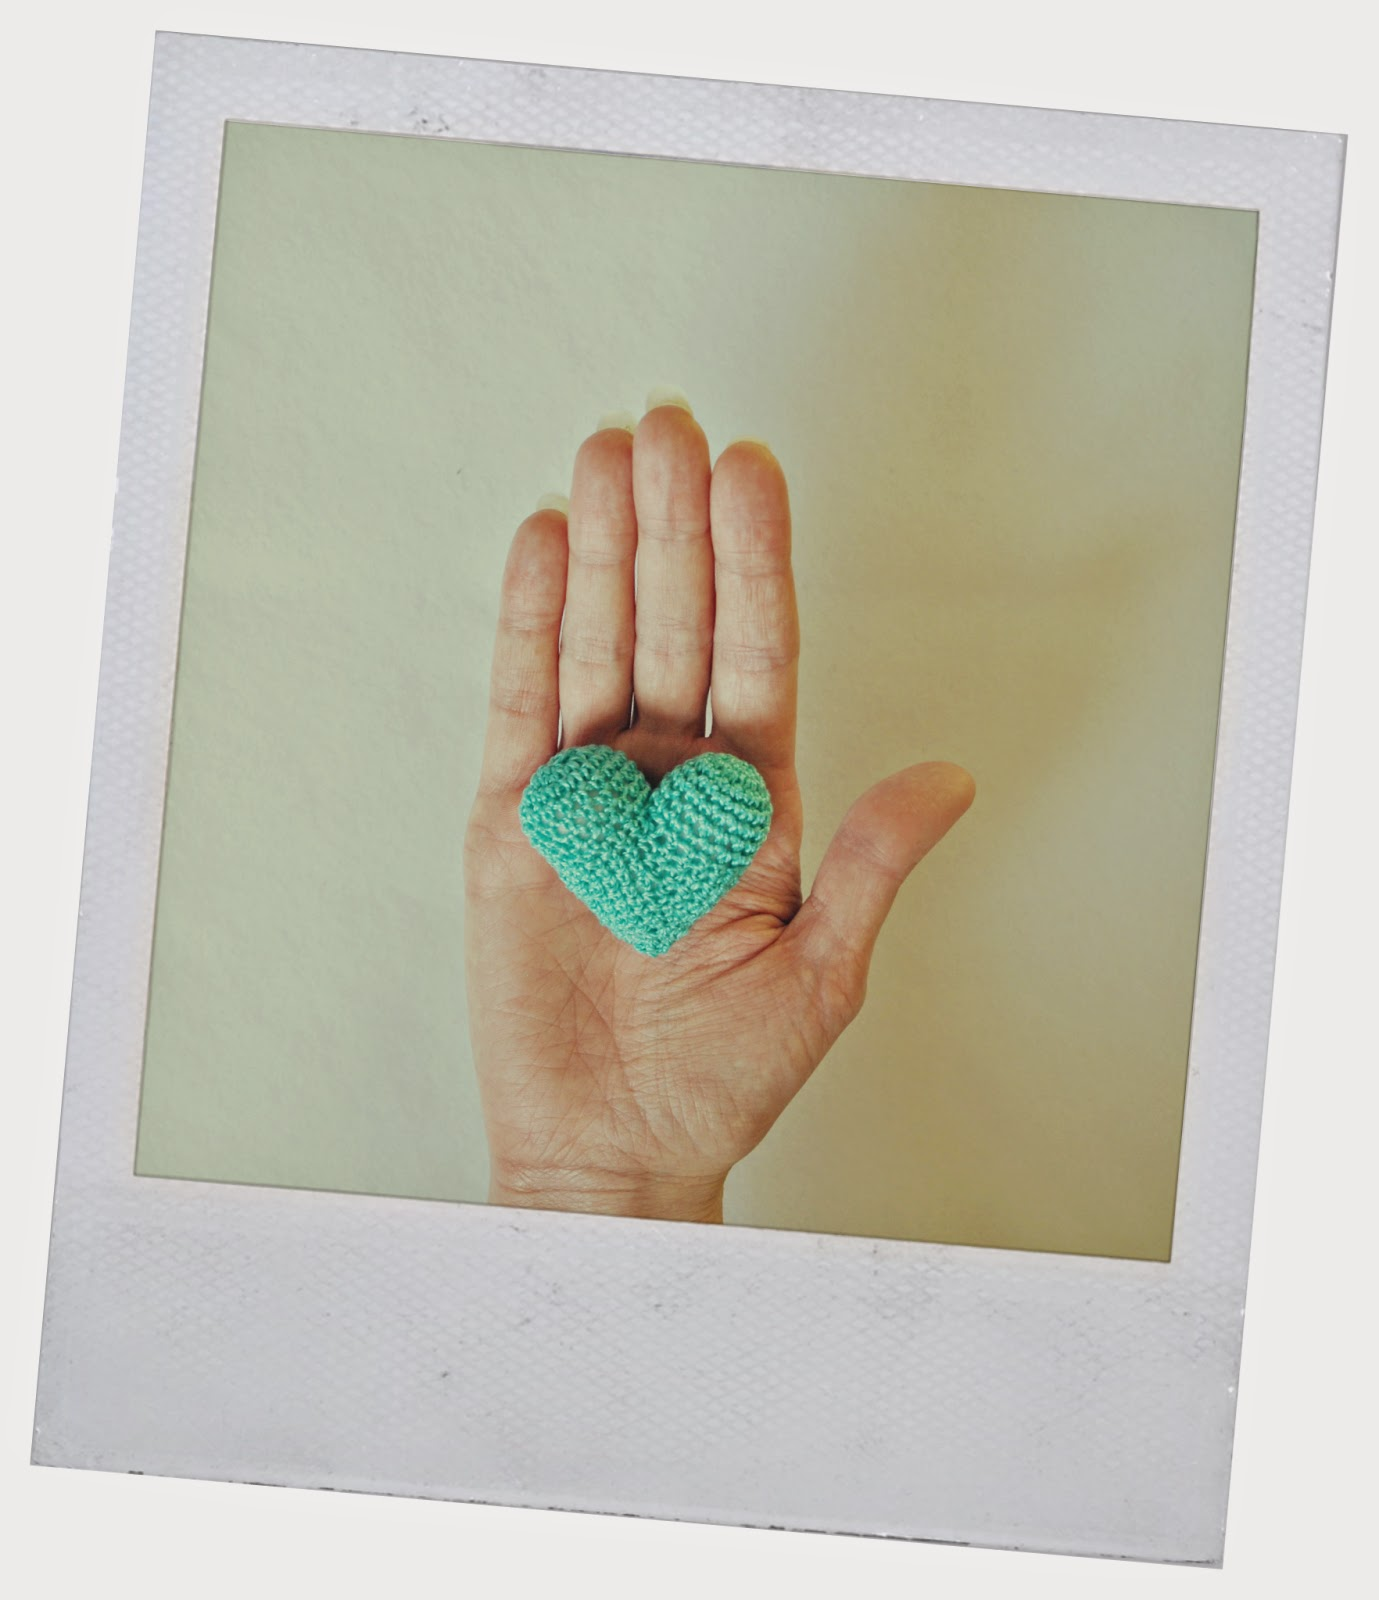 heart mint Valentine's day handmade knitting